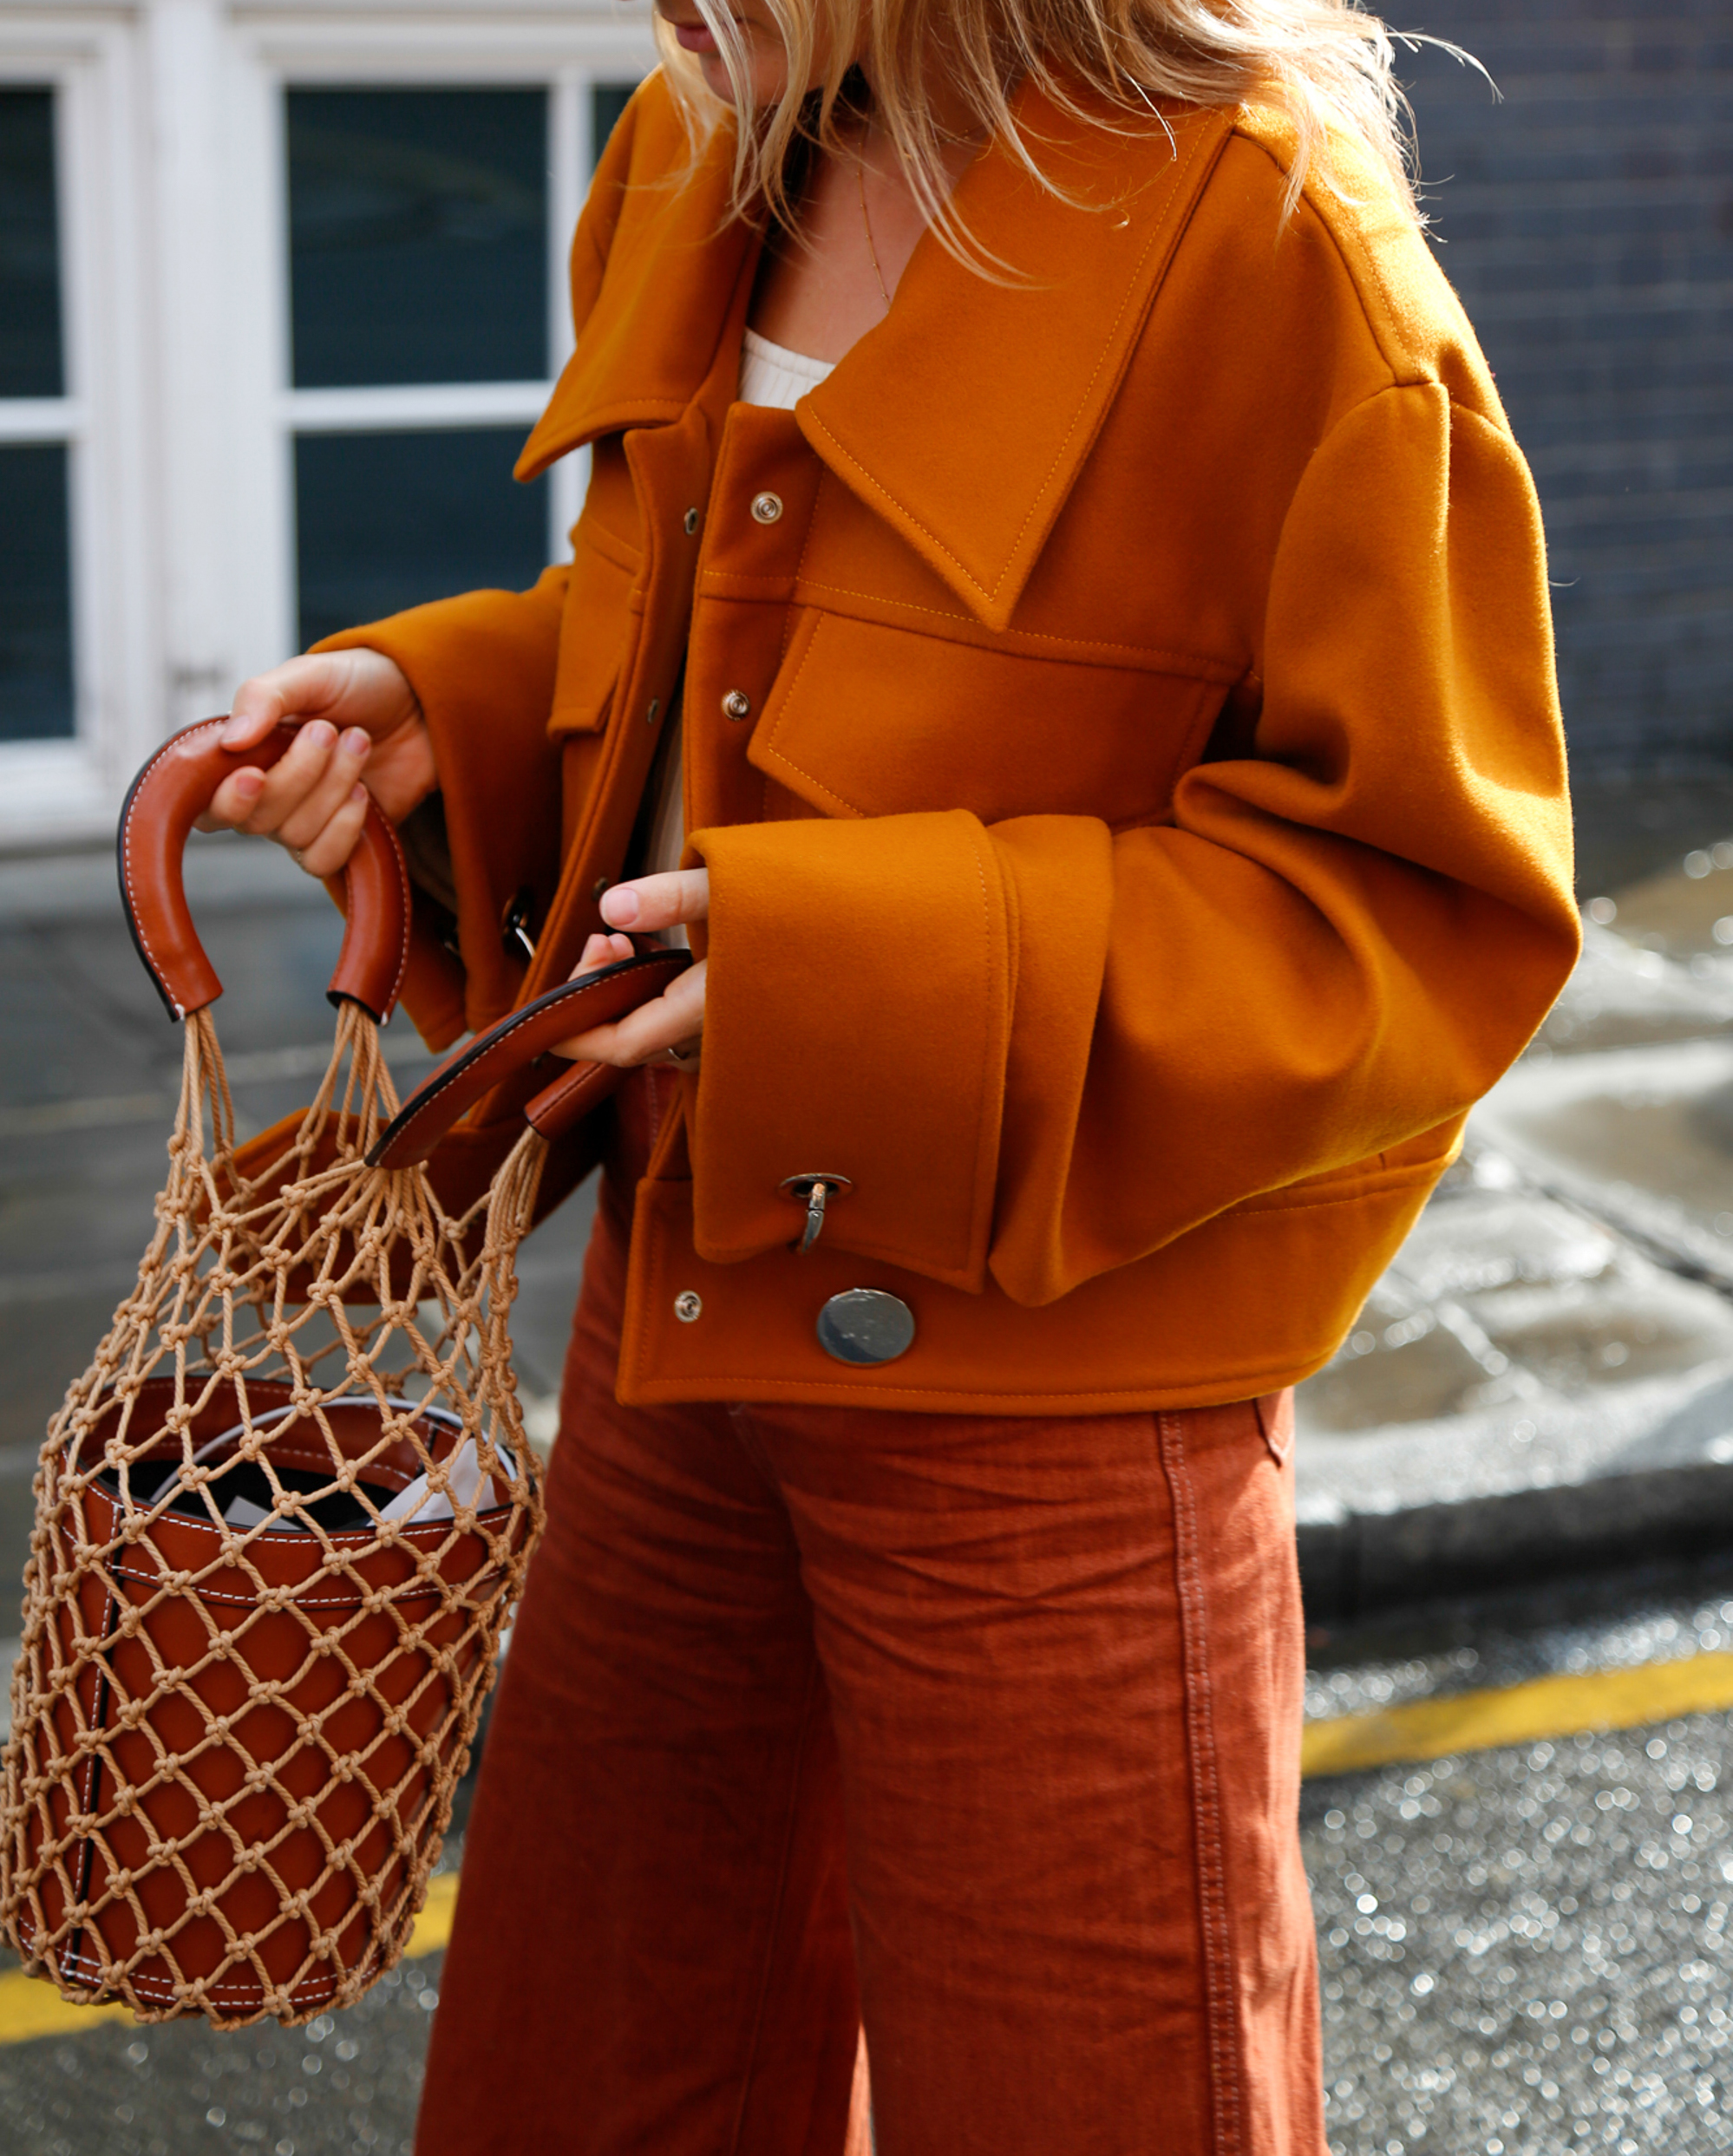 ORANGE INSPO-15129-macarenagea